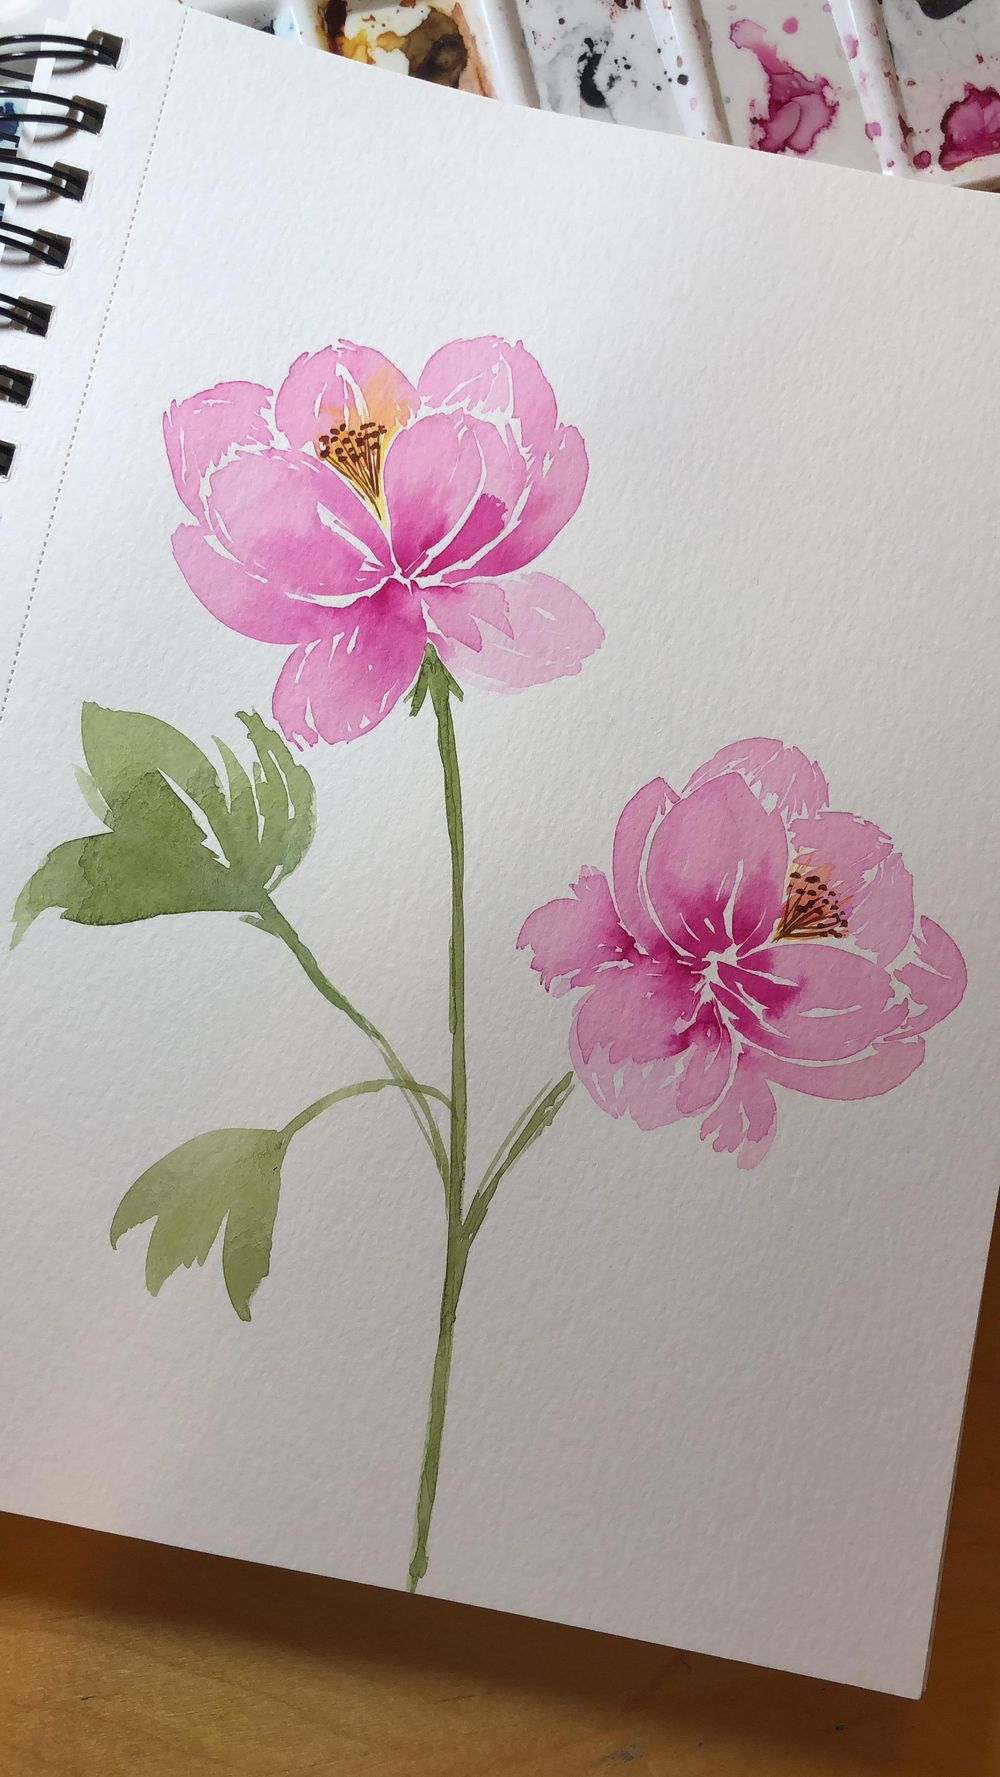 Peonies with Joly - image 2 - student project